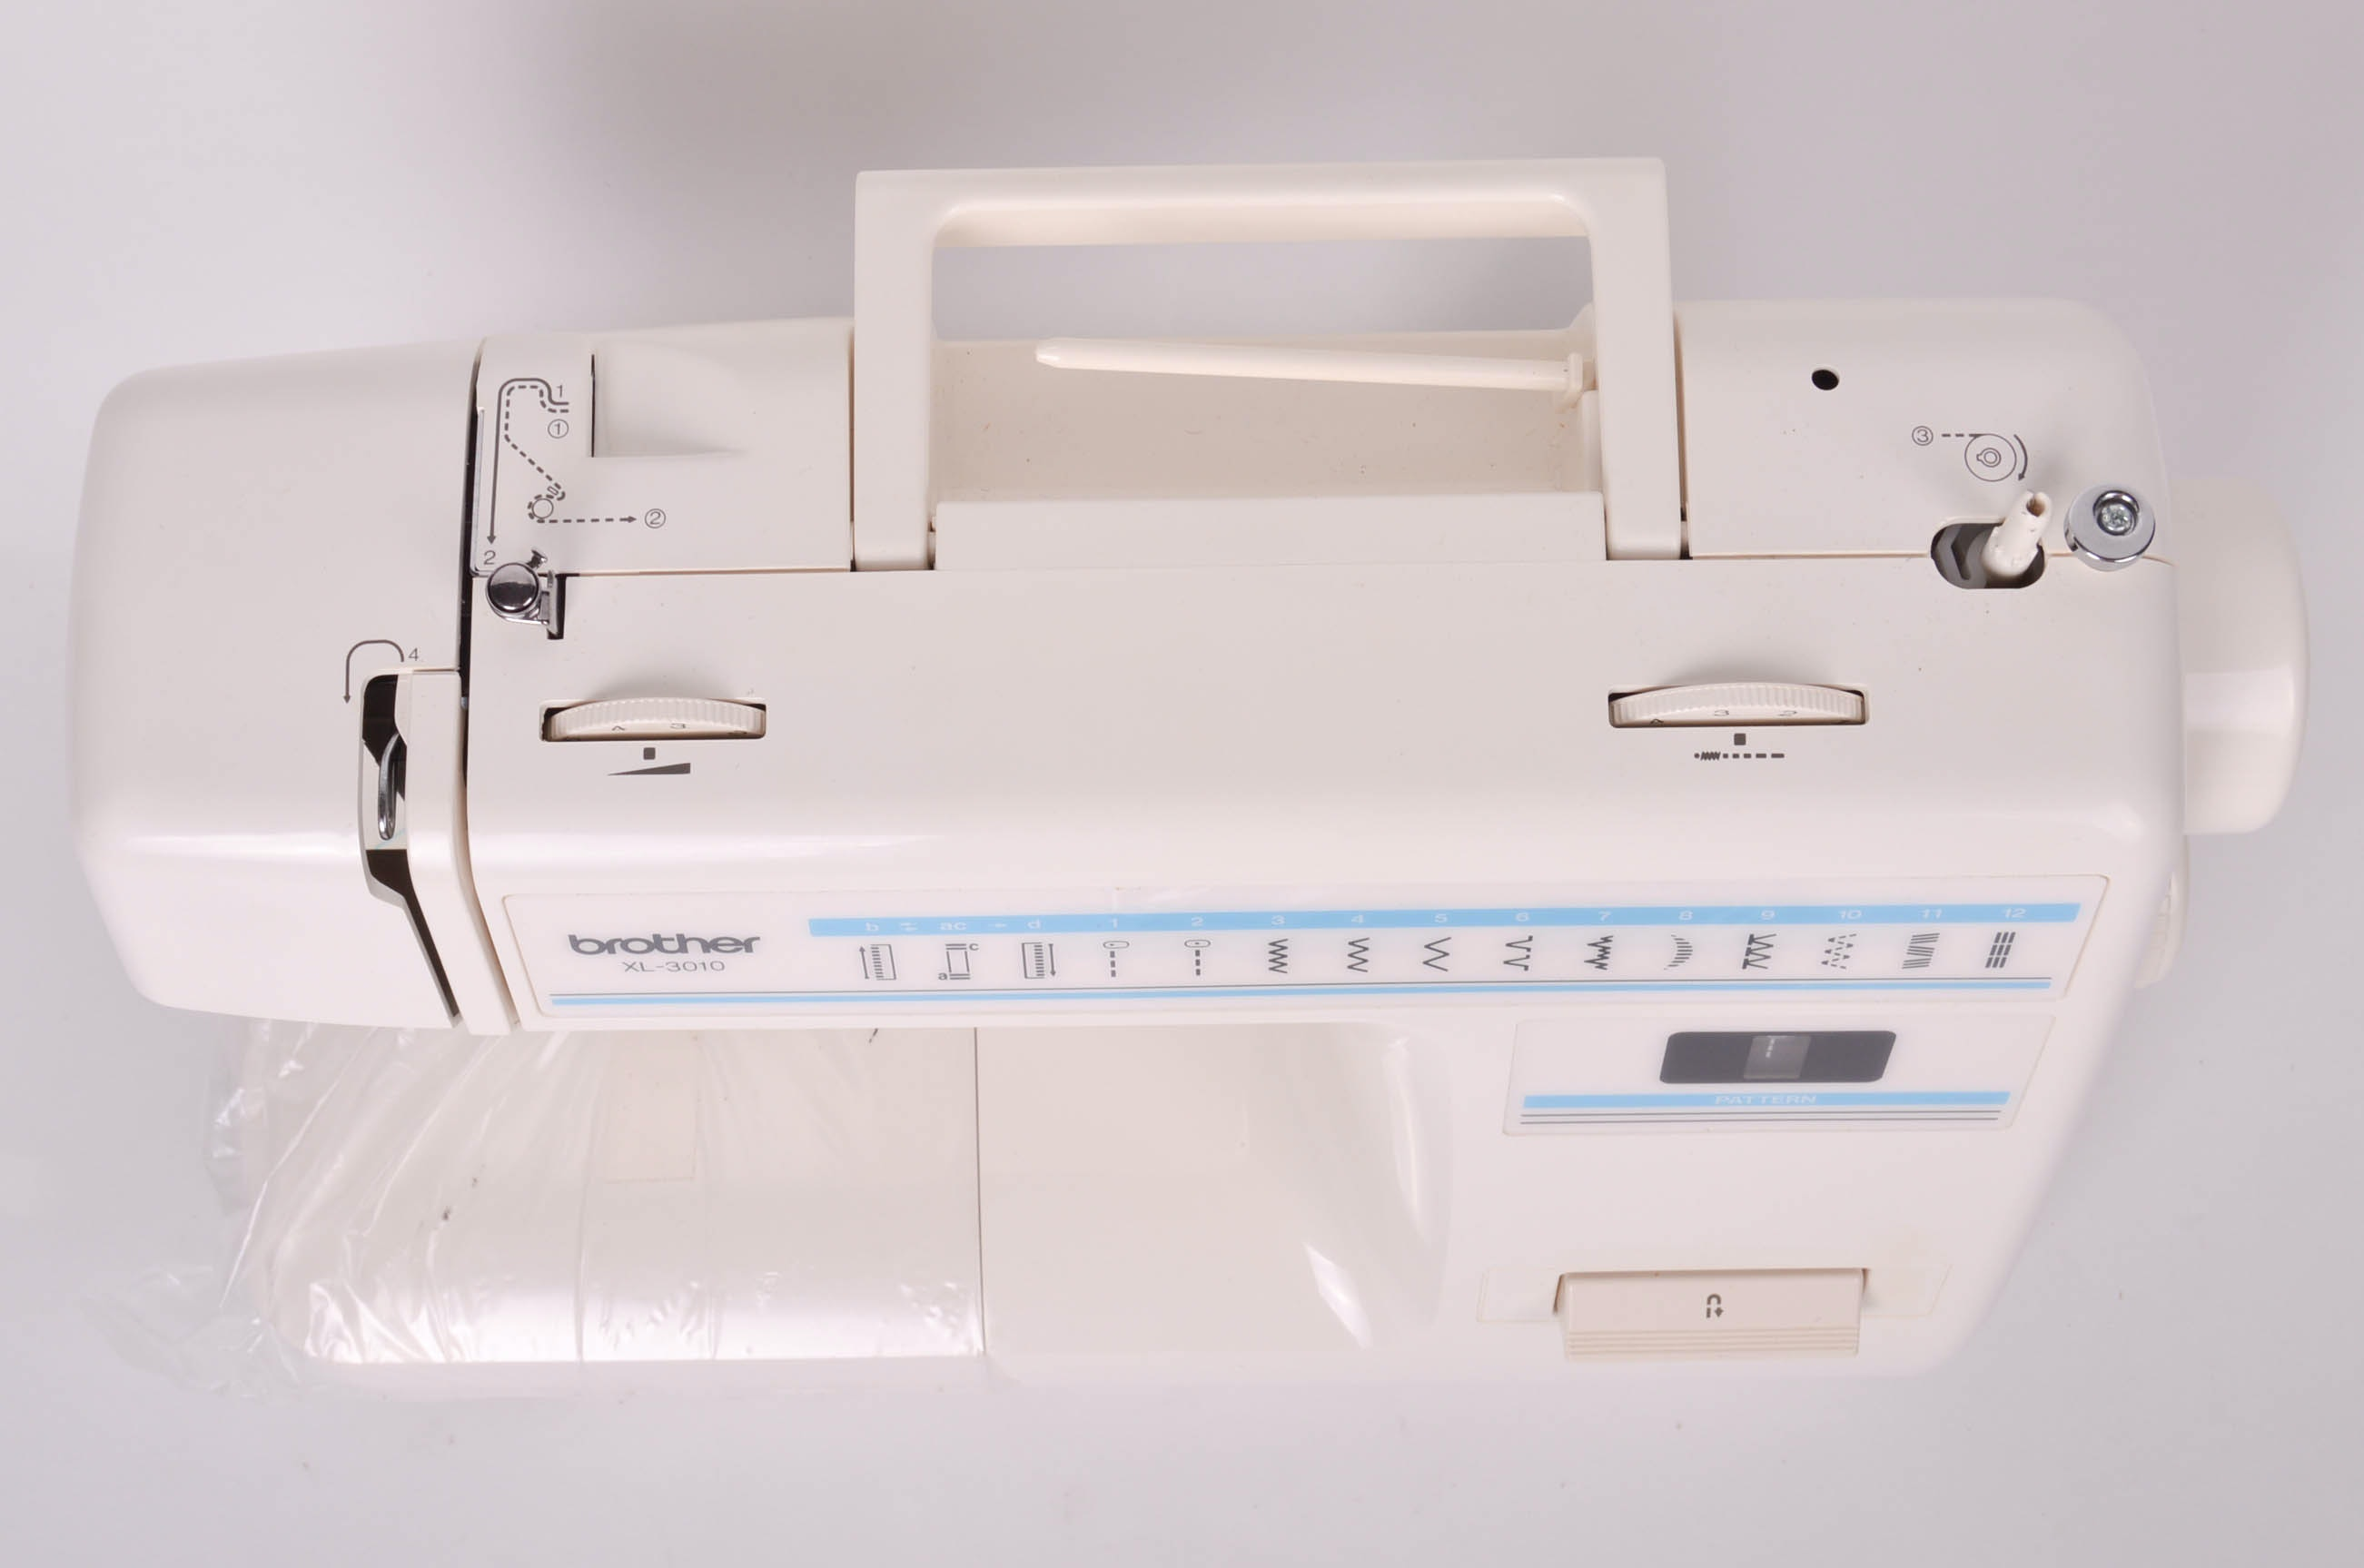 xl 3010 sewing machine for sale